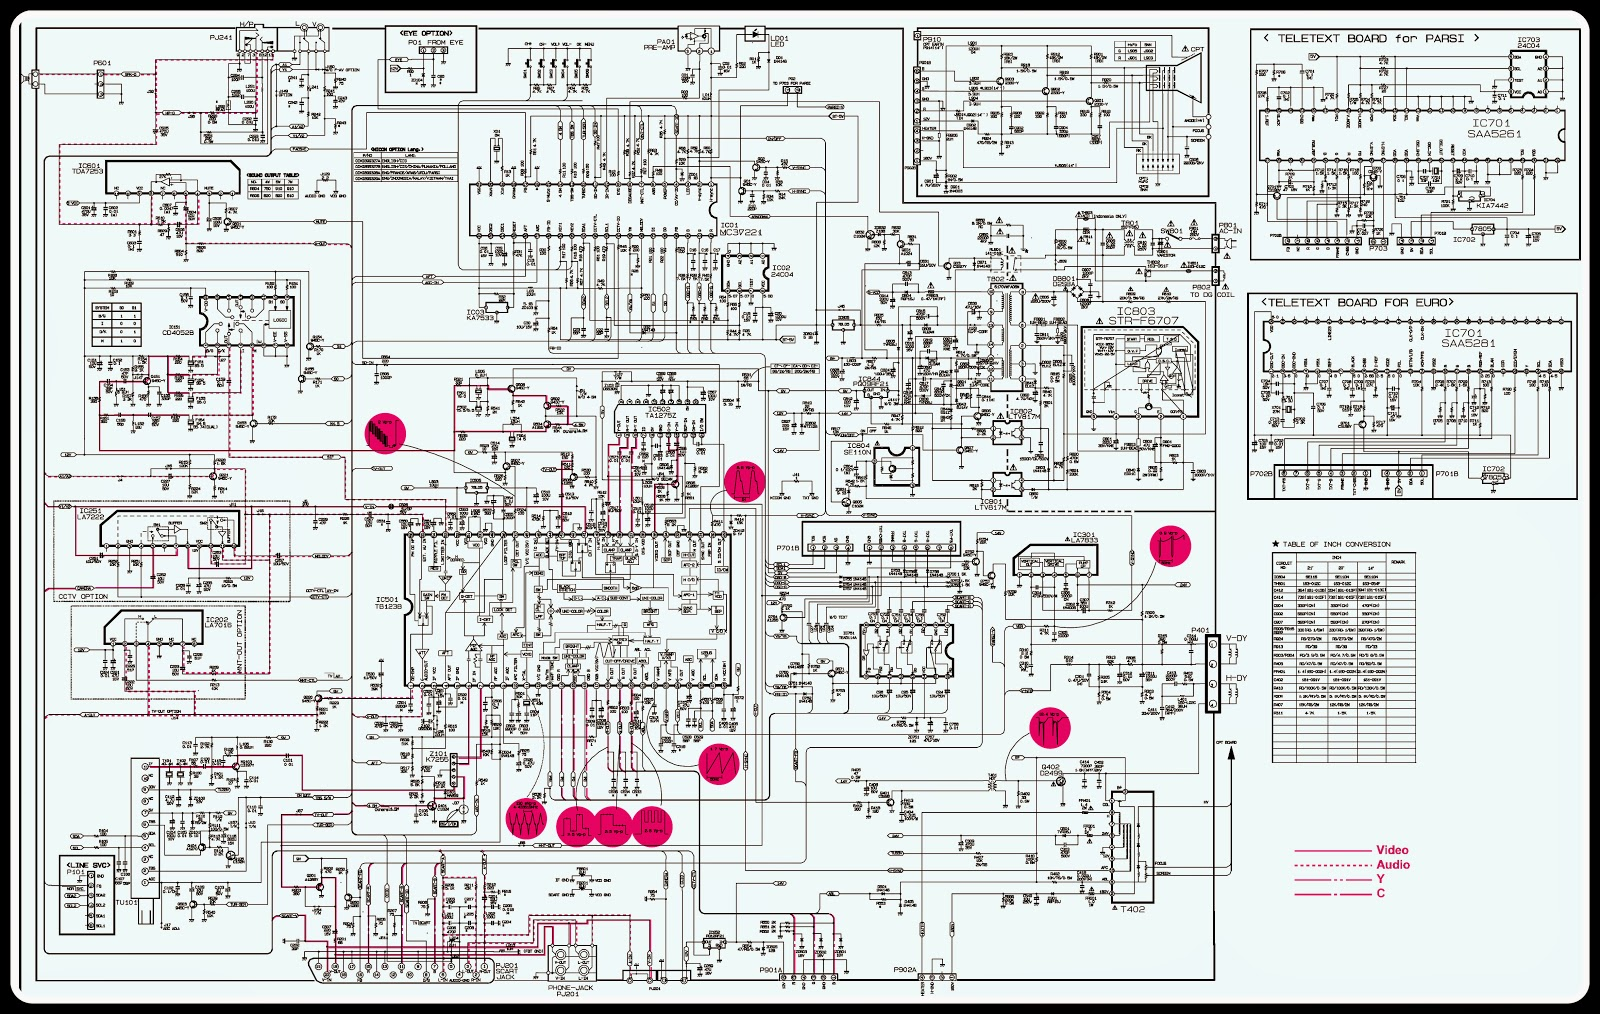 lg tv circuit diagram learn basic electronics circuit diagram rh learnelectronicshelp blogspot com circuit diagram elements circuit diagram drawing